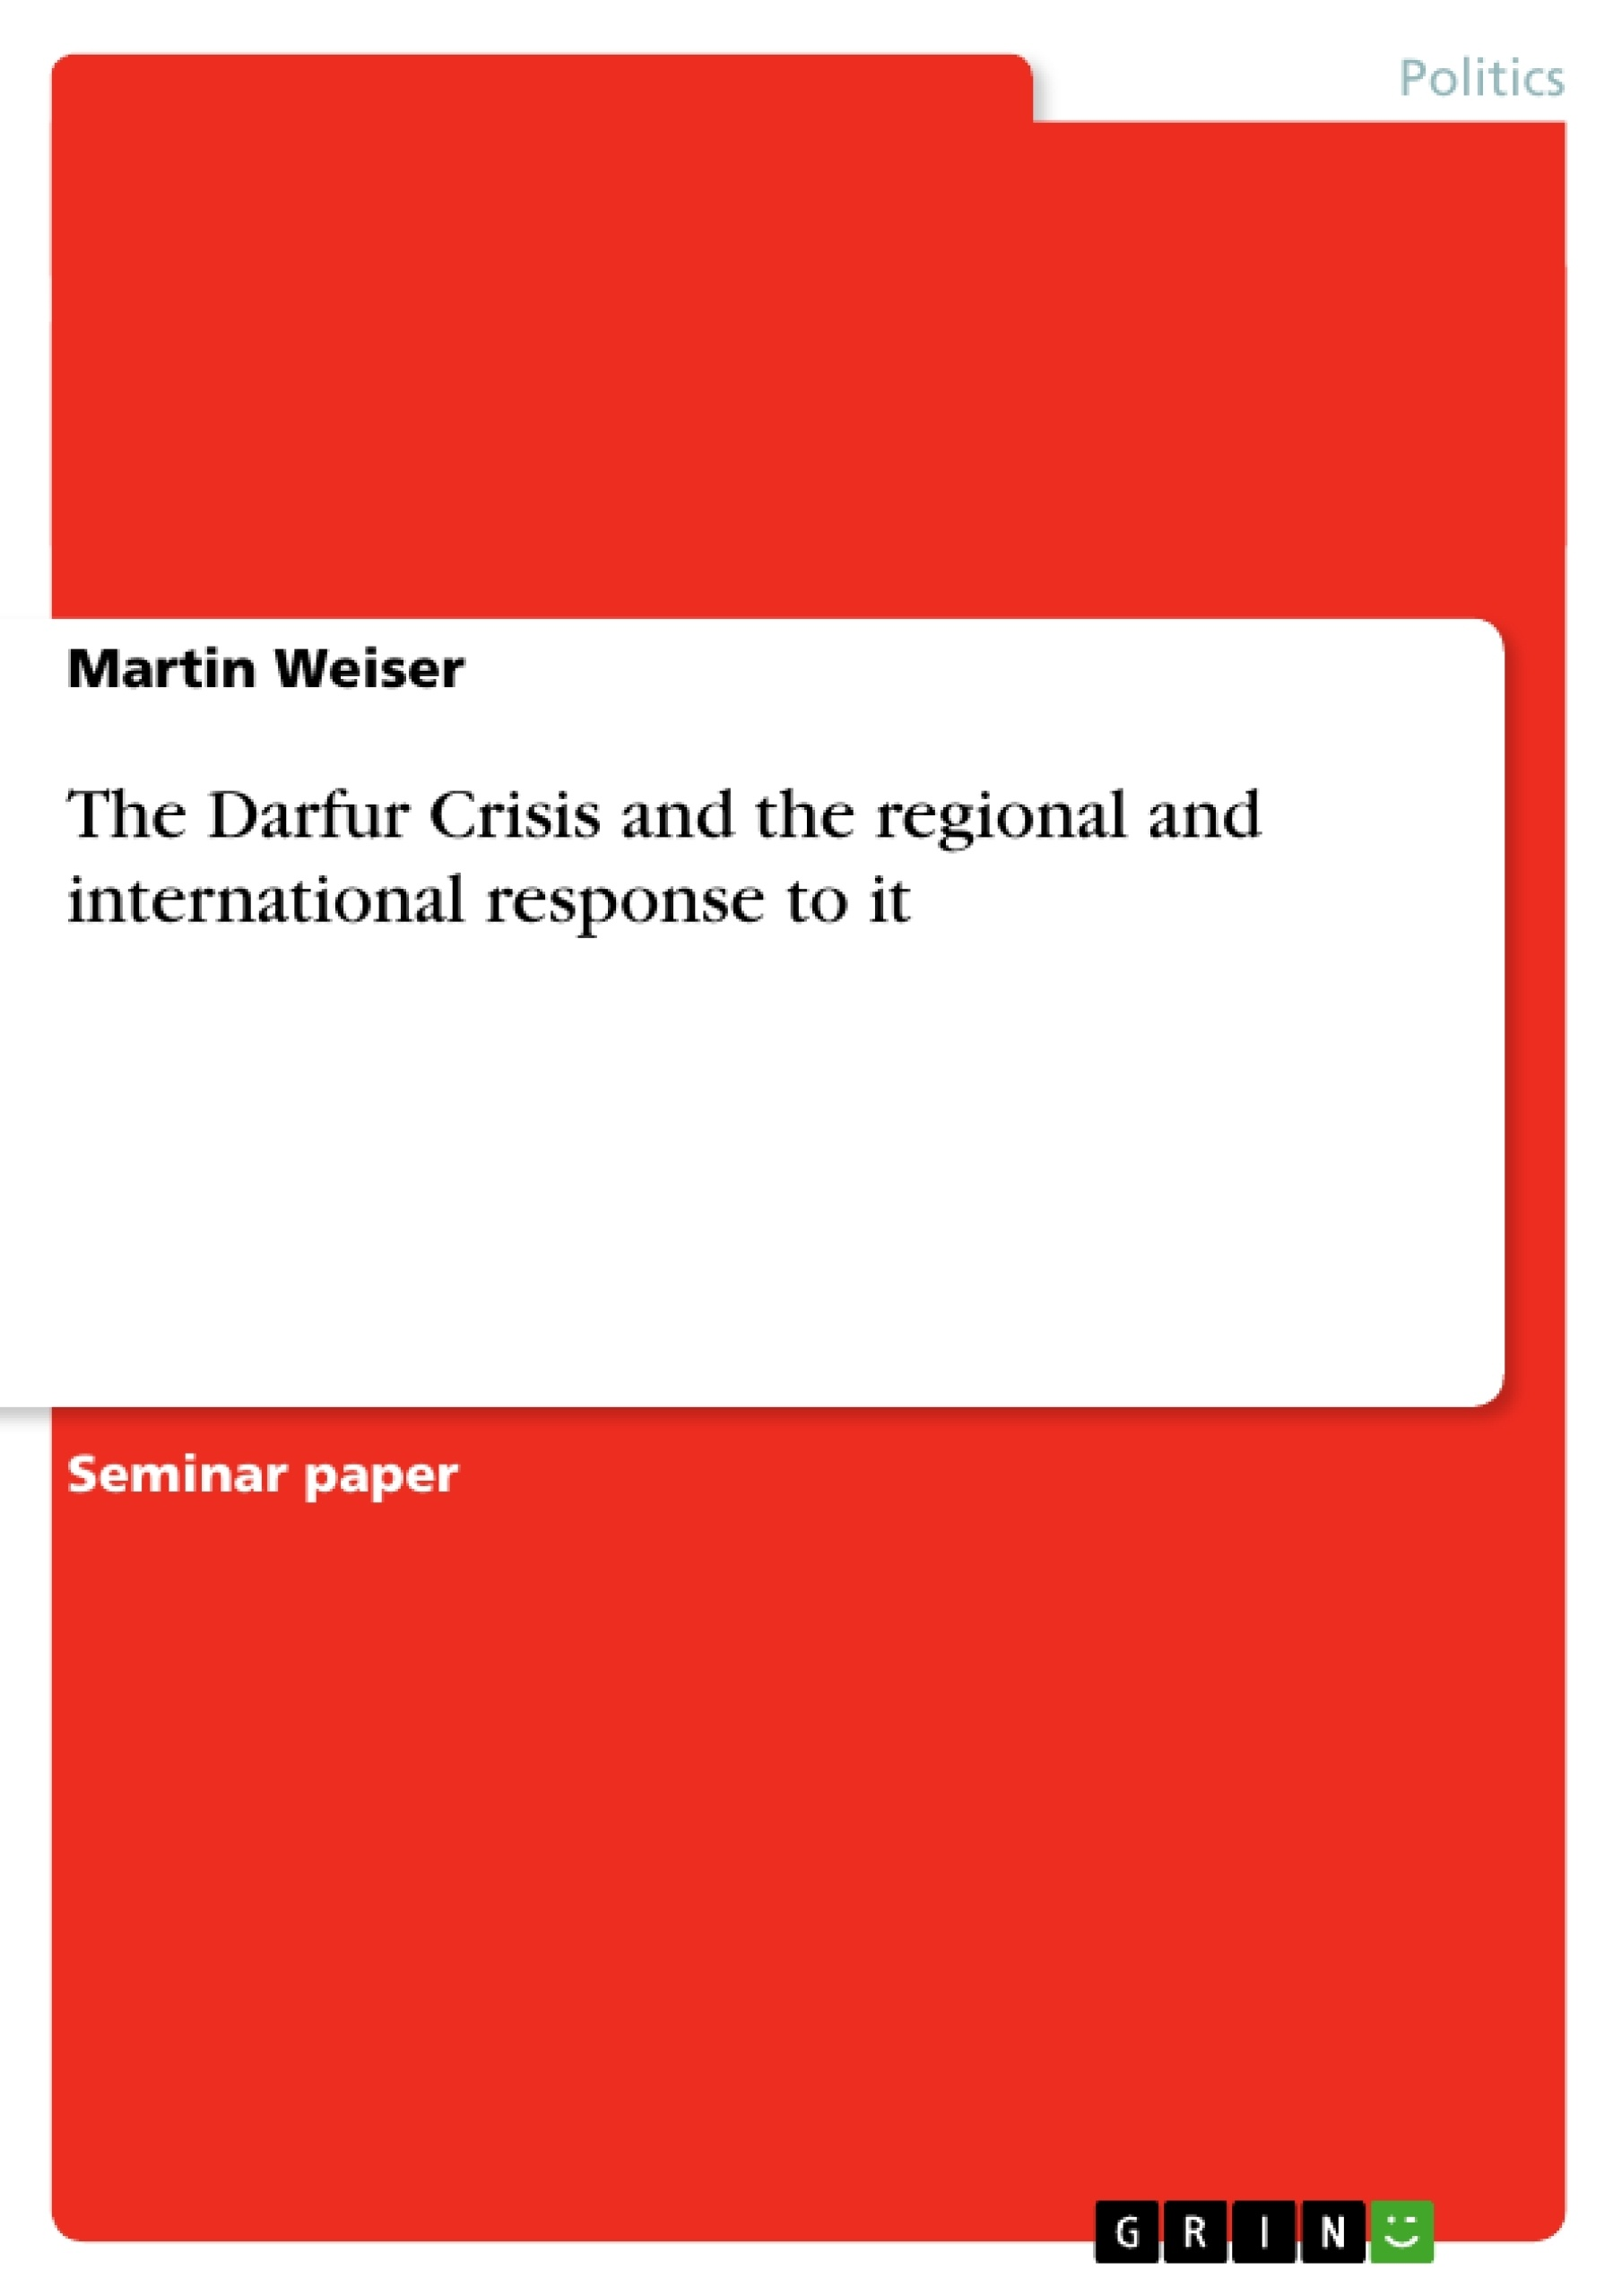 Title: The Darfur Crisis and the regional and international response to it